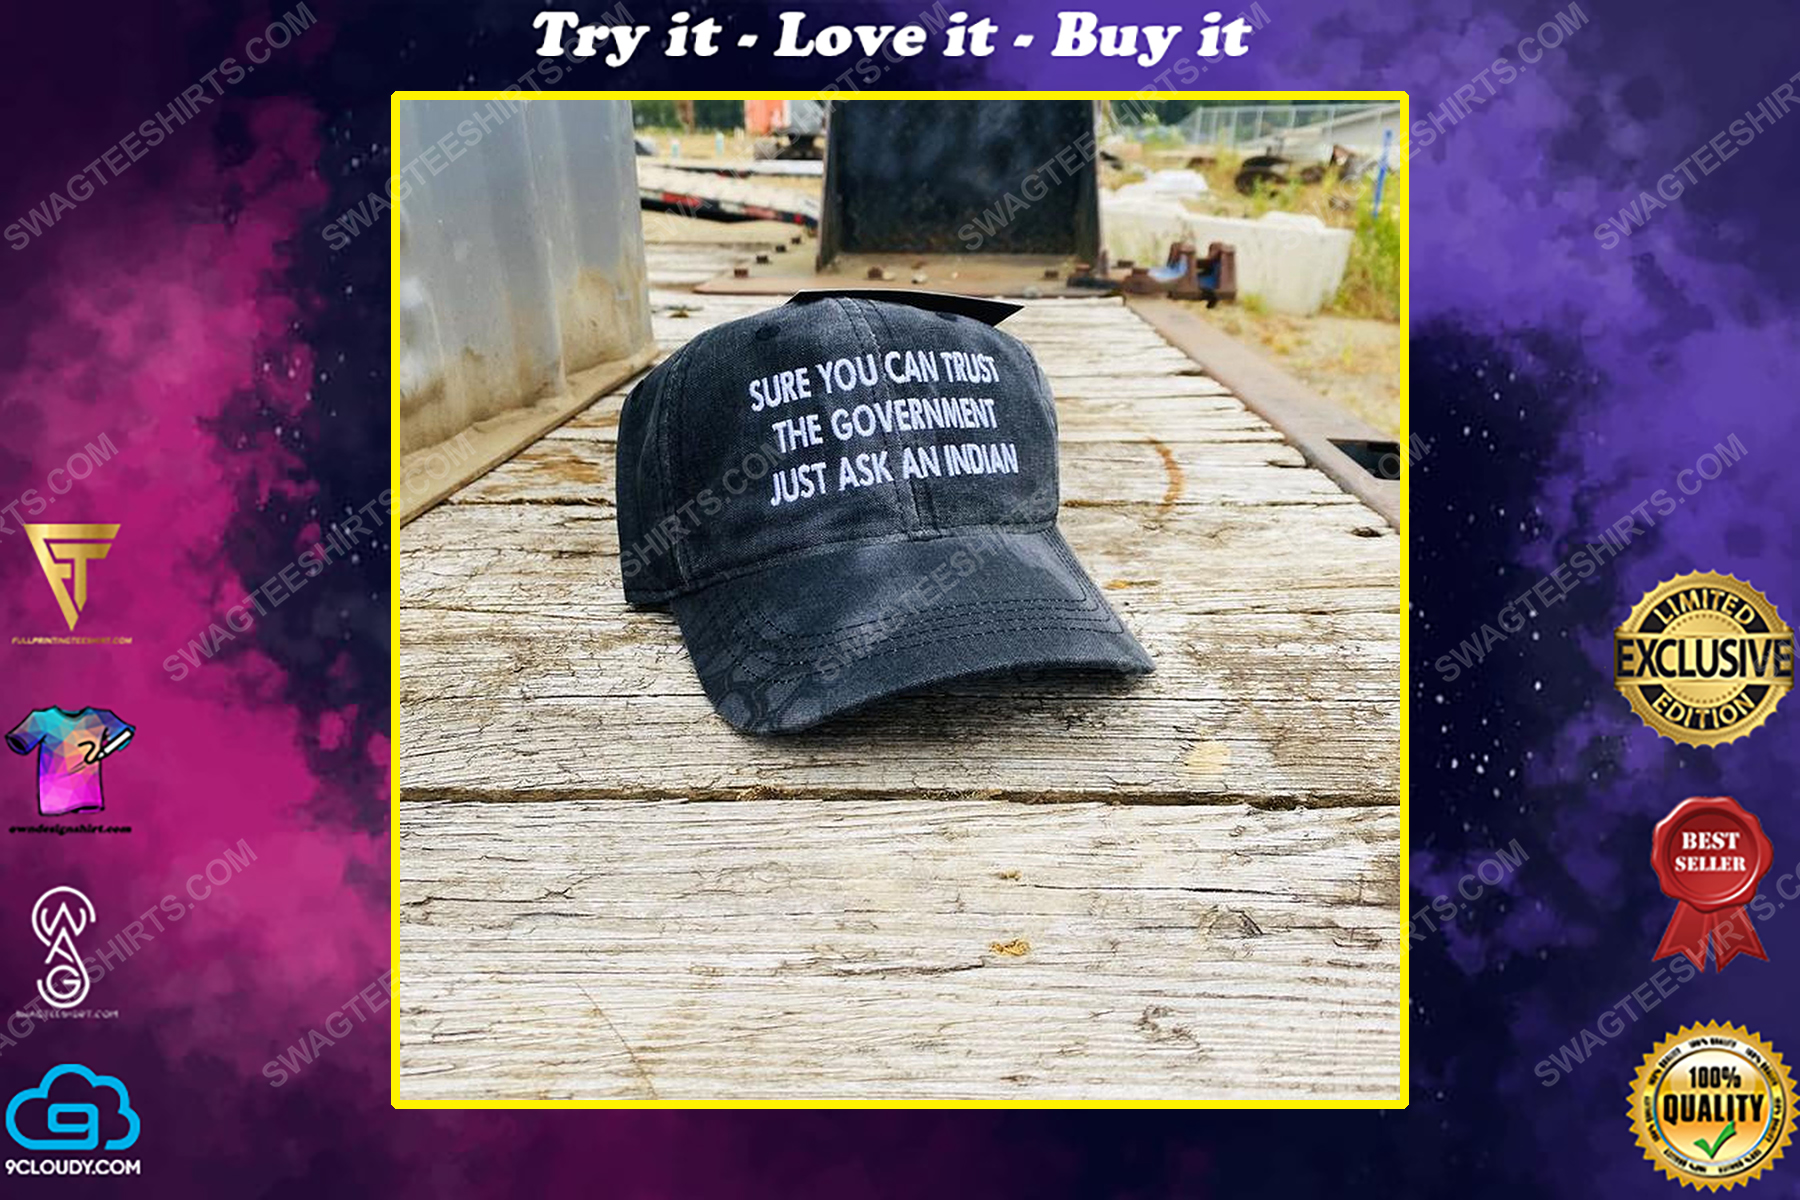 Sure you can trust a government just ask an indian full print classic hat